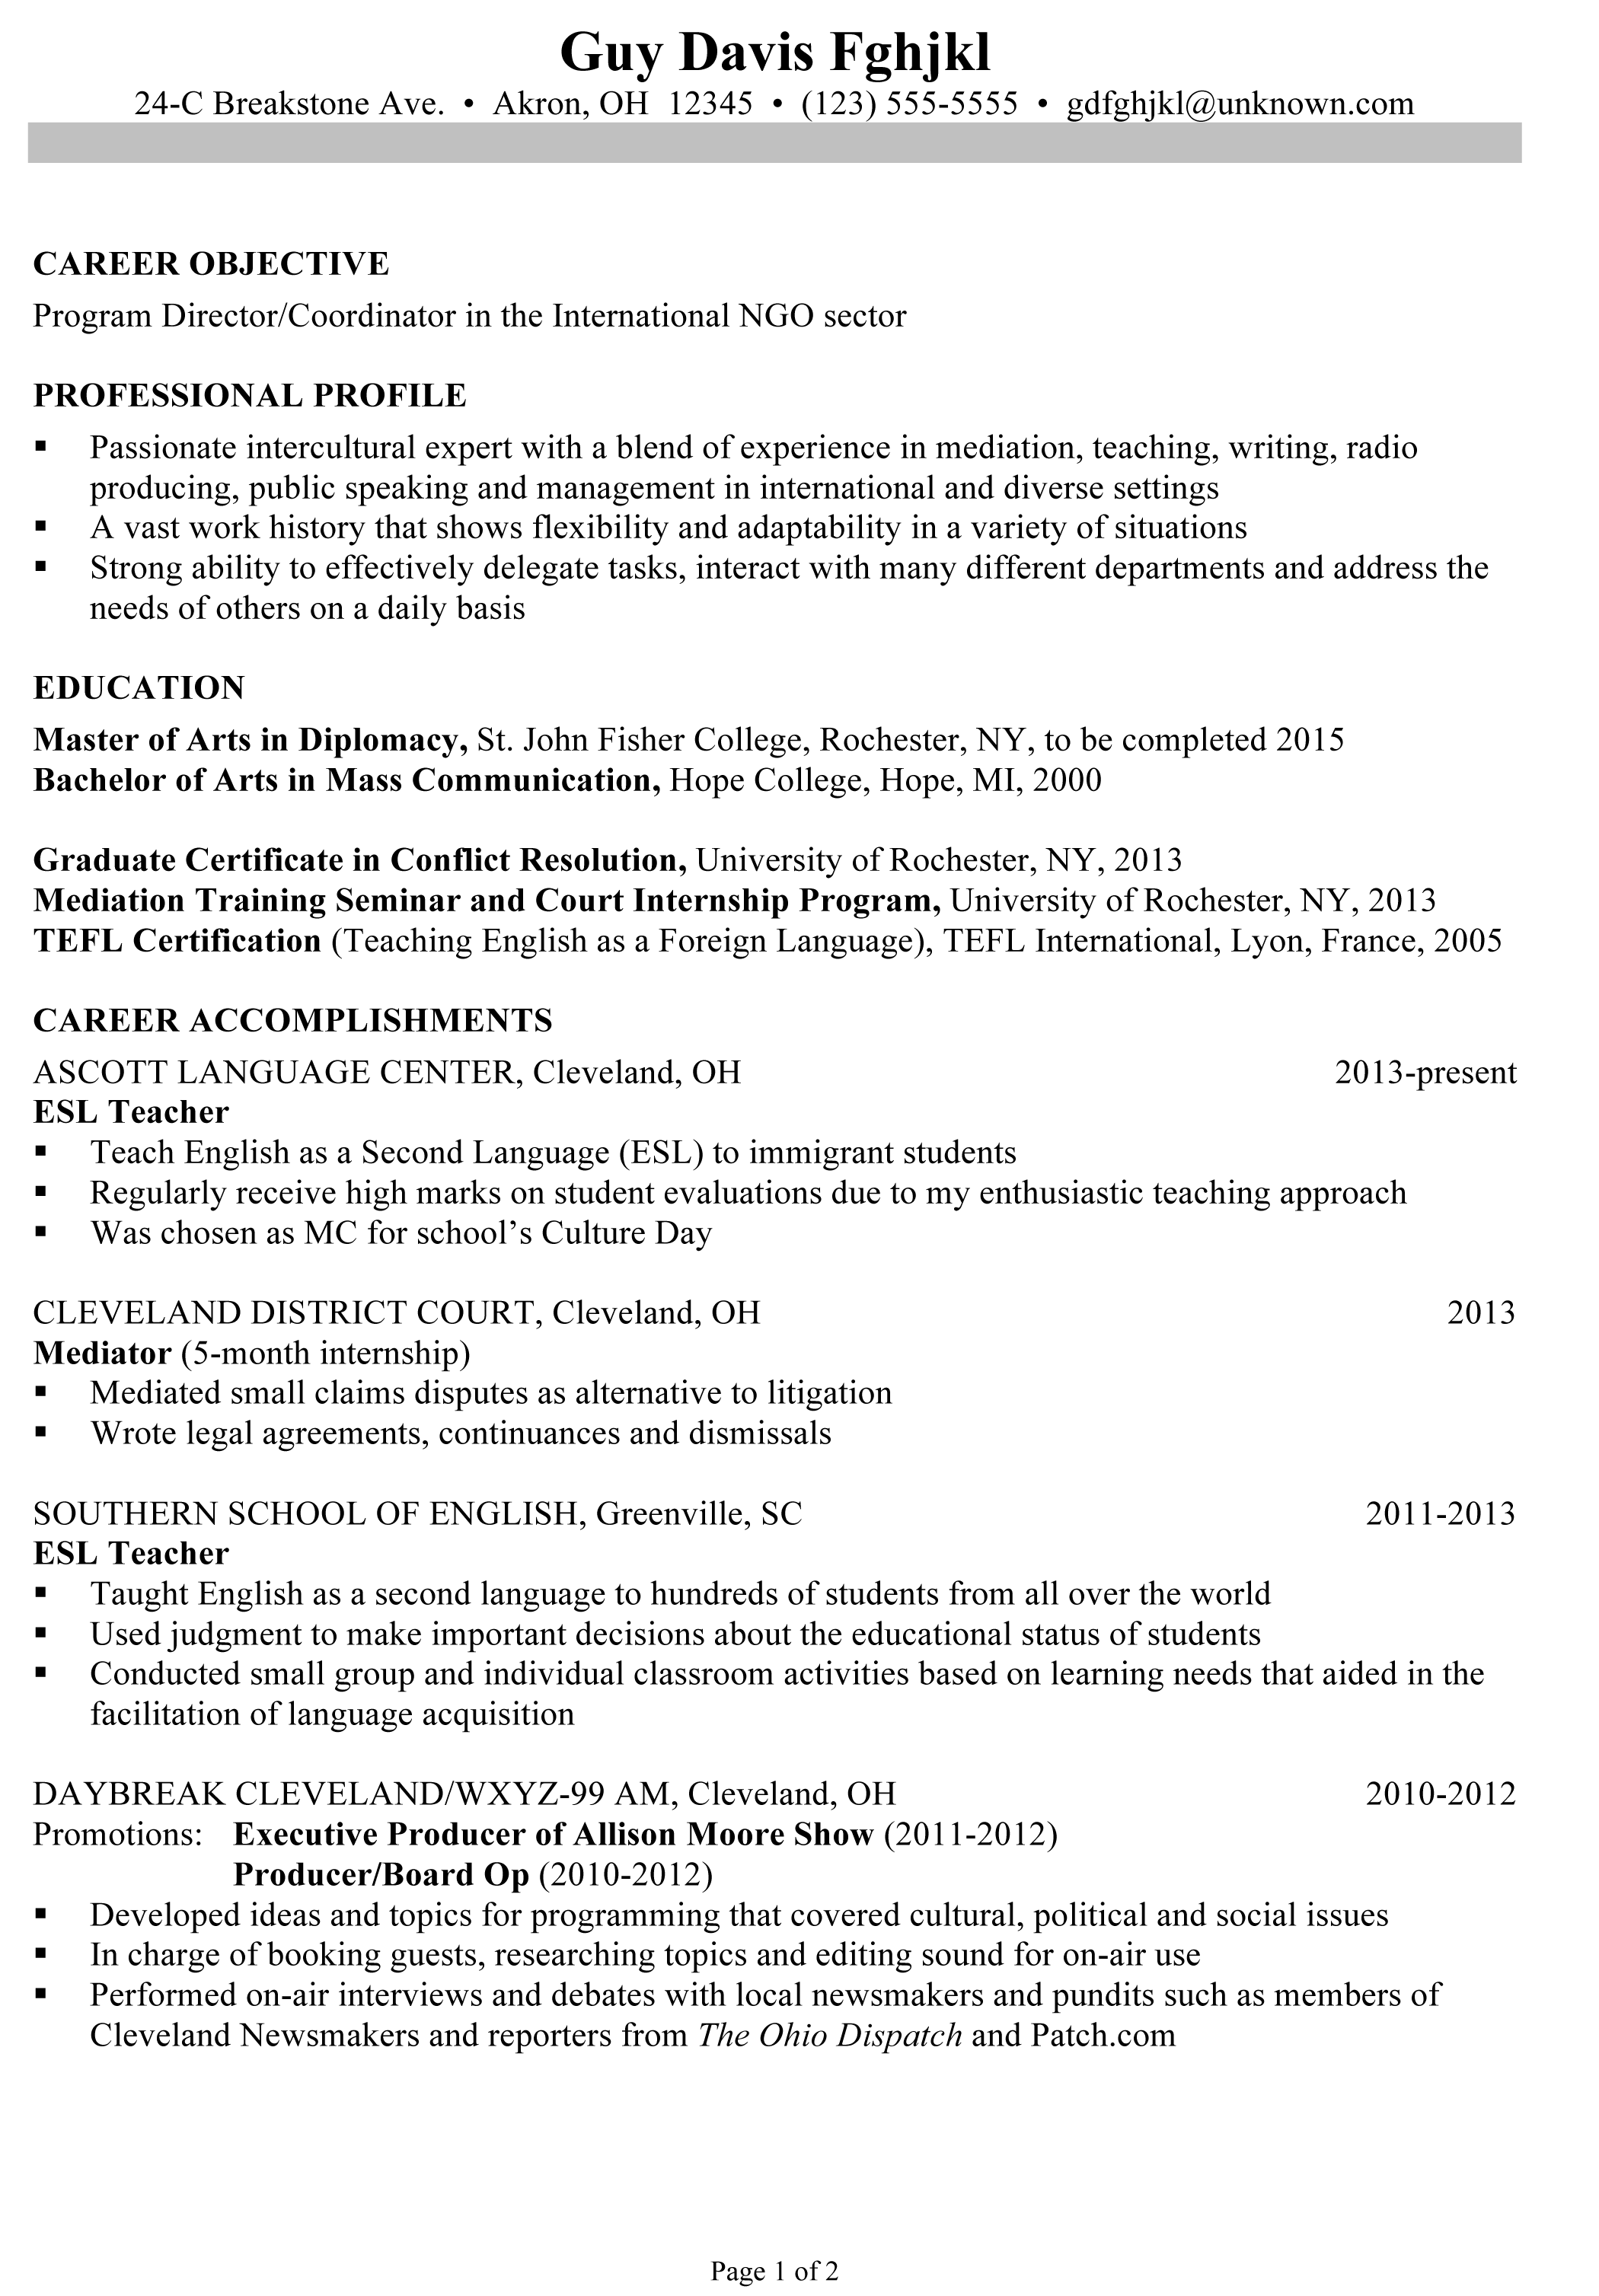 professional summary resume example best templatesample